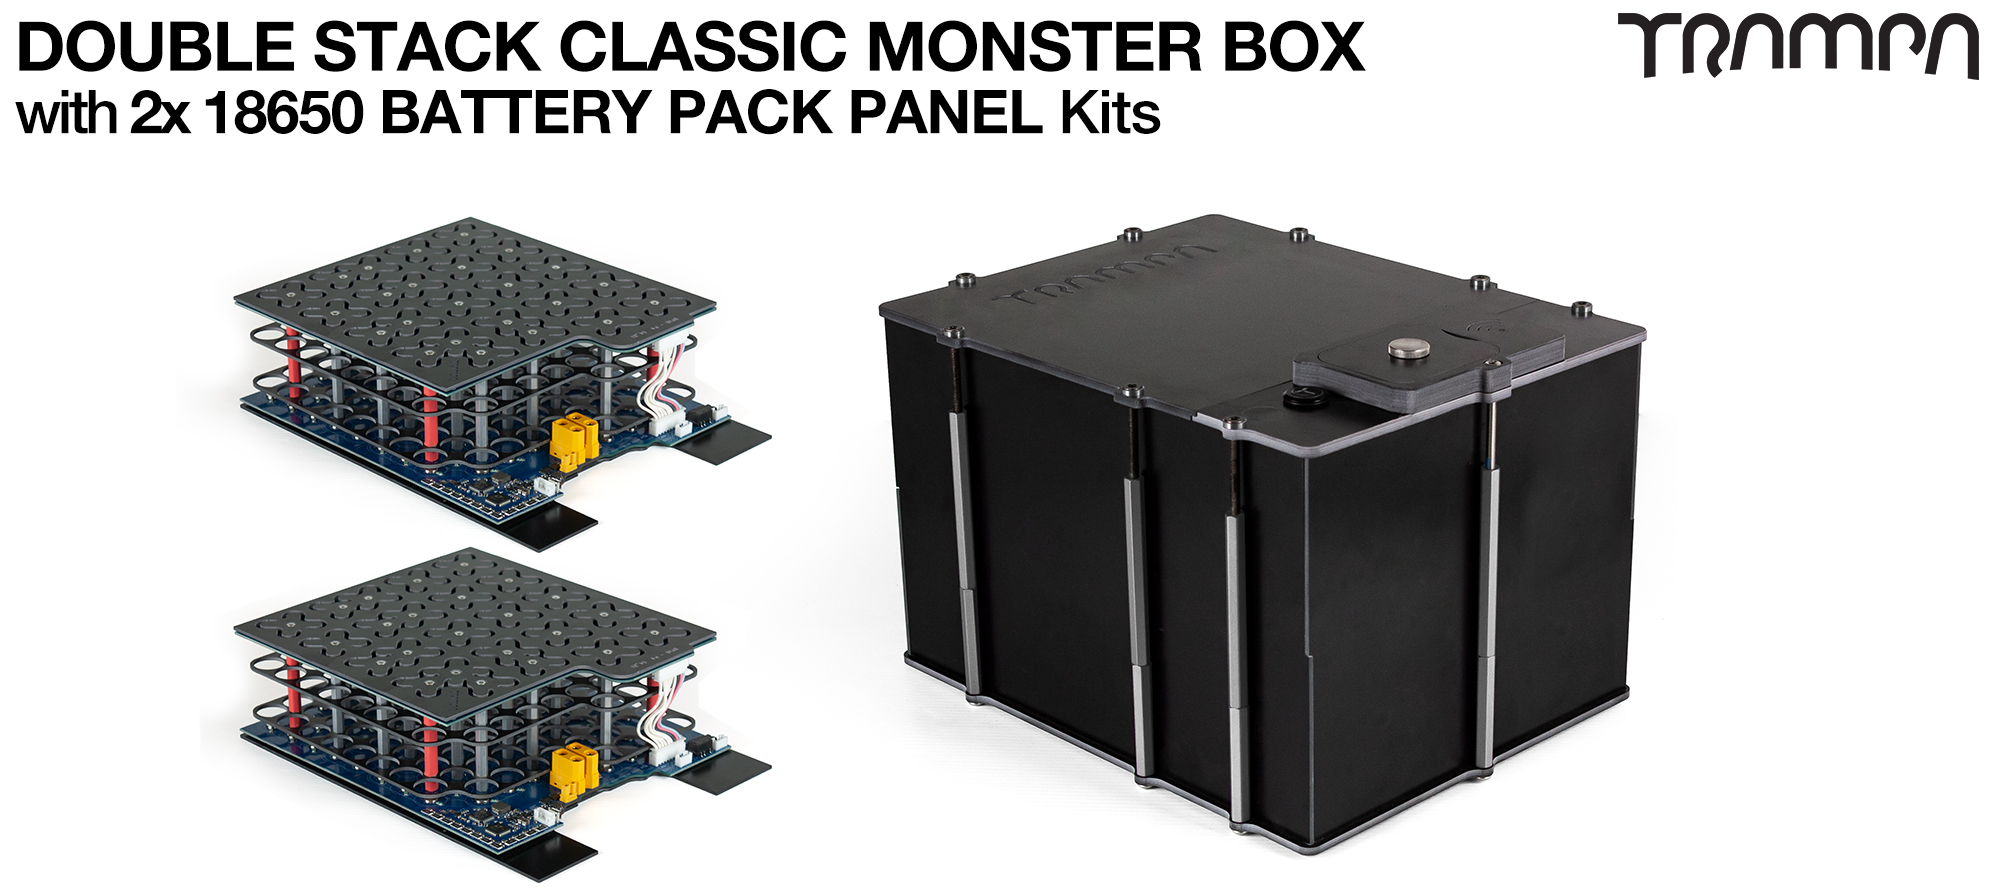 Classic MONSTER Box MkV DOUBLE STACKER supplied with a 18650 PCB based Battery Pack with Integrated Battery Management System (BMS) - NO VESC & NO Cells